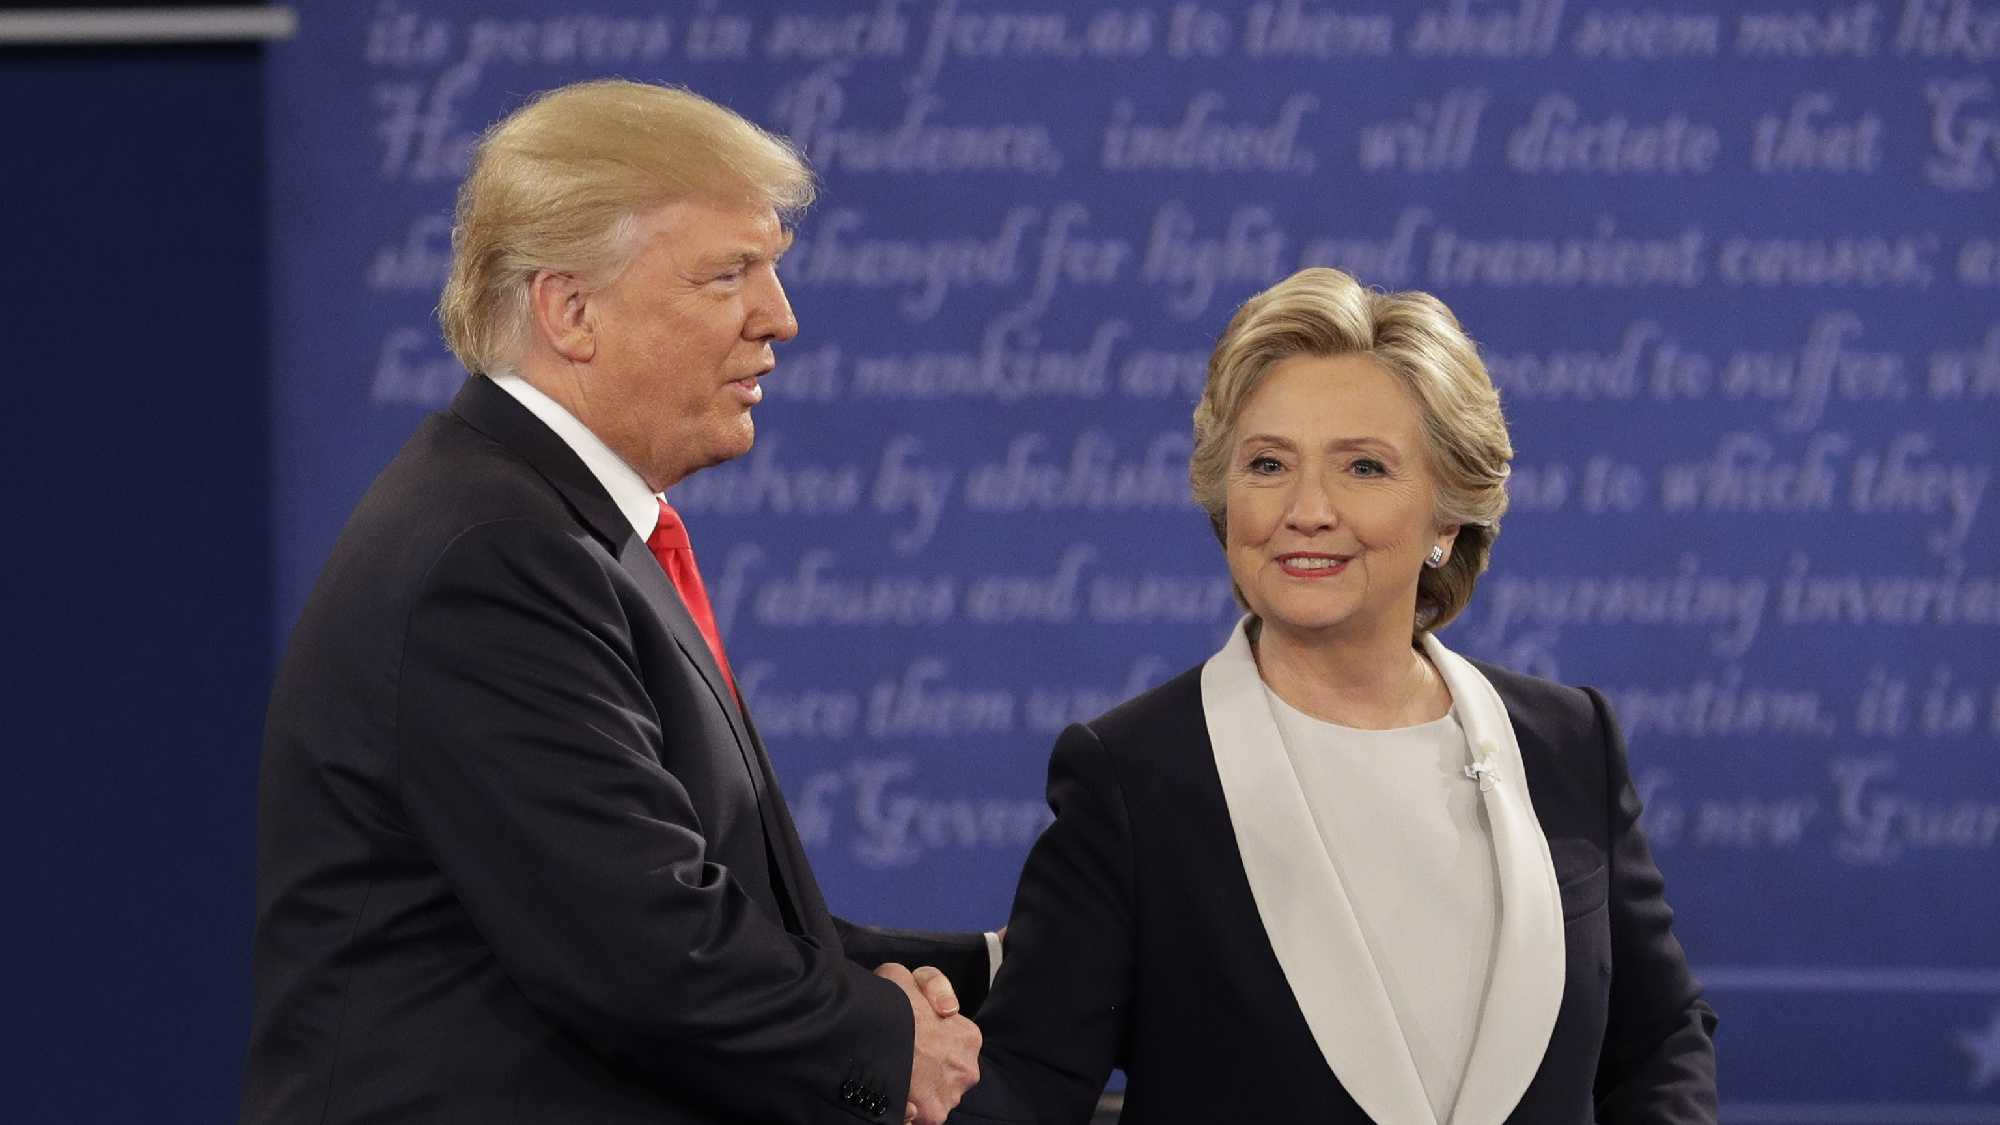 Republican presidential nominee Donald Trump shakes hands with Democratic presidential nominee Hillary Clinton during the second presidential debate at Washington University in St. Louis, Sunday, Oct. 9, 2016.